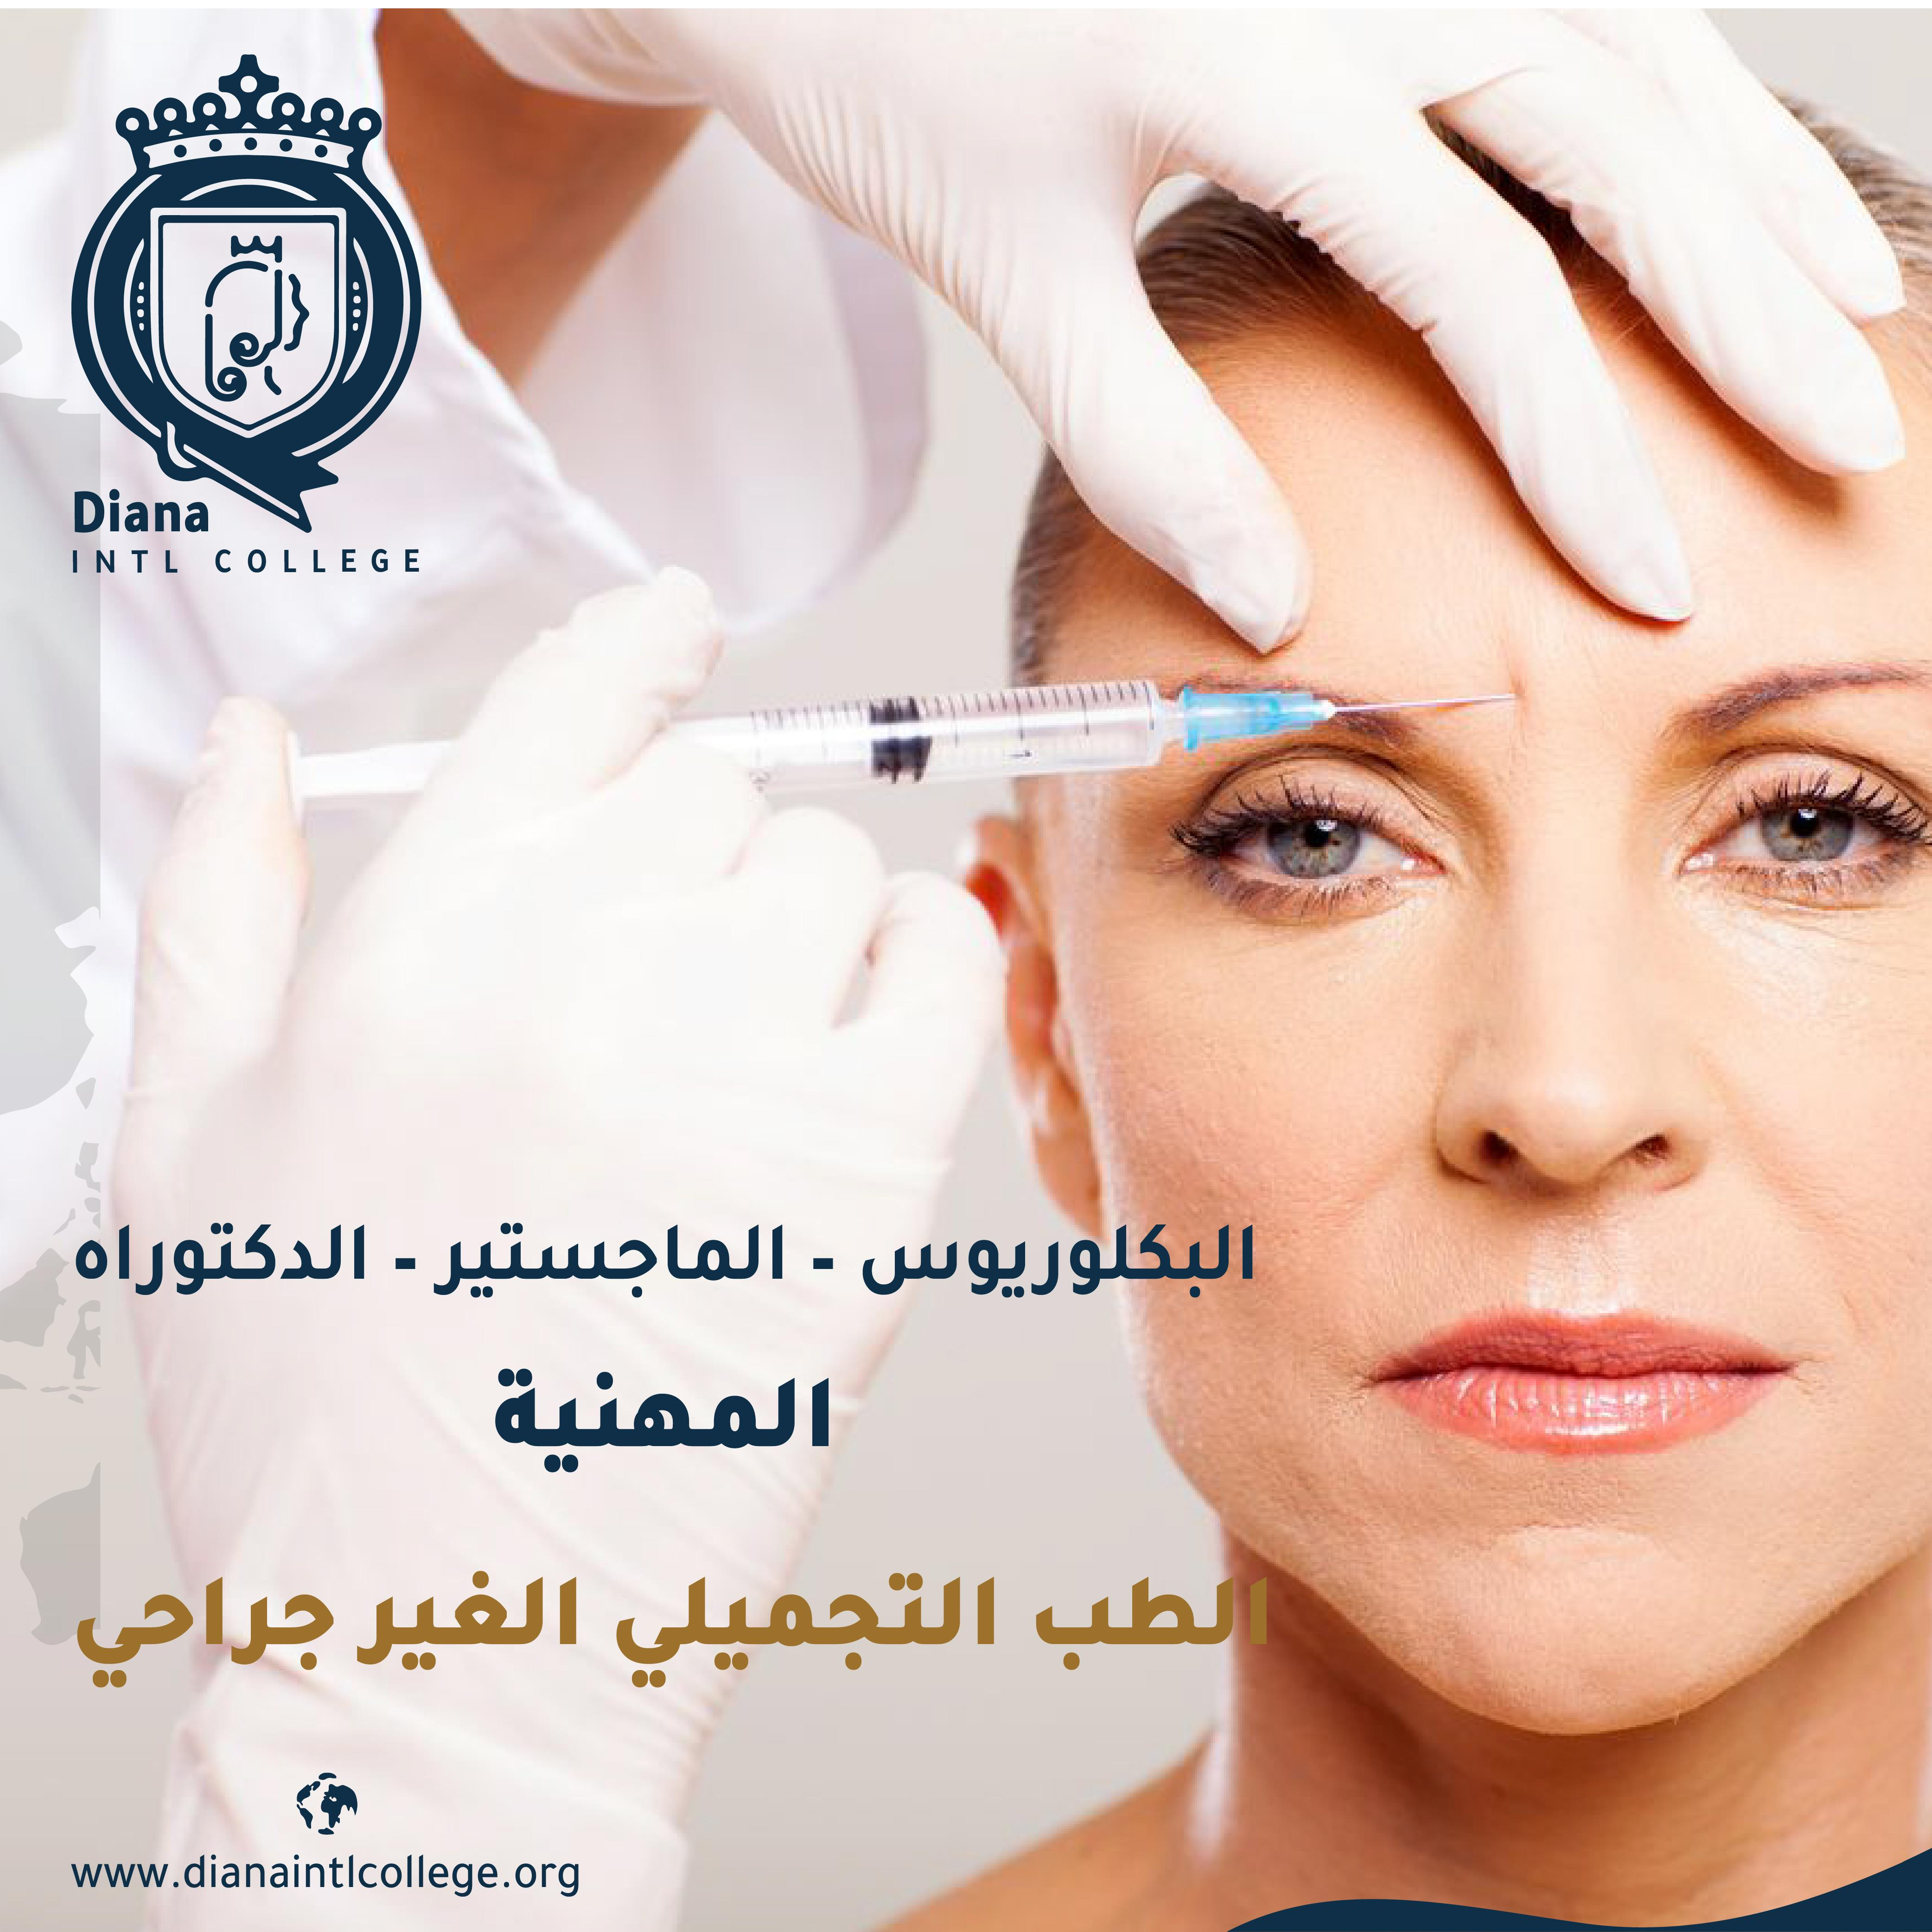 Department of non-surgical aesthetic treatments